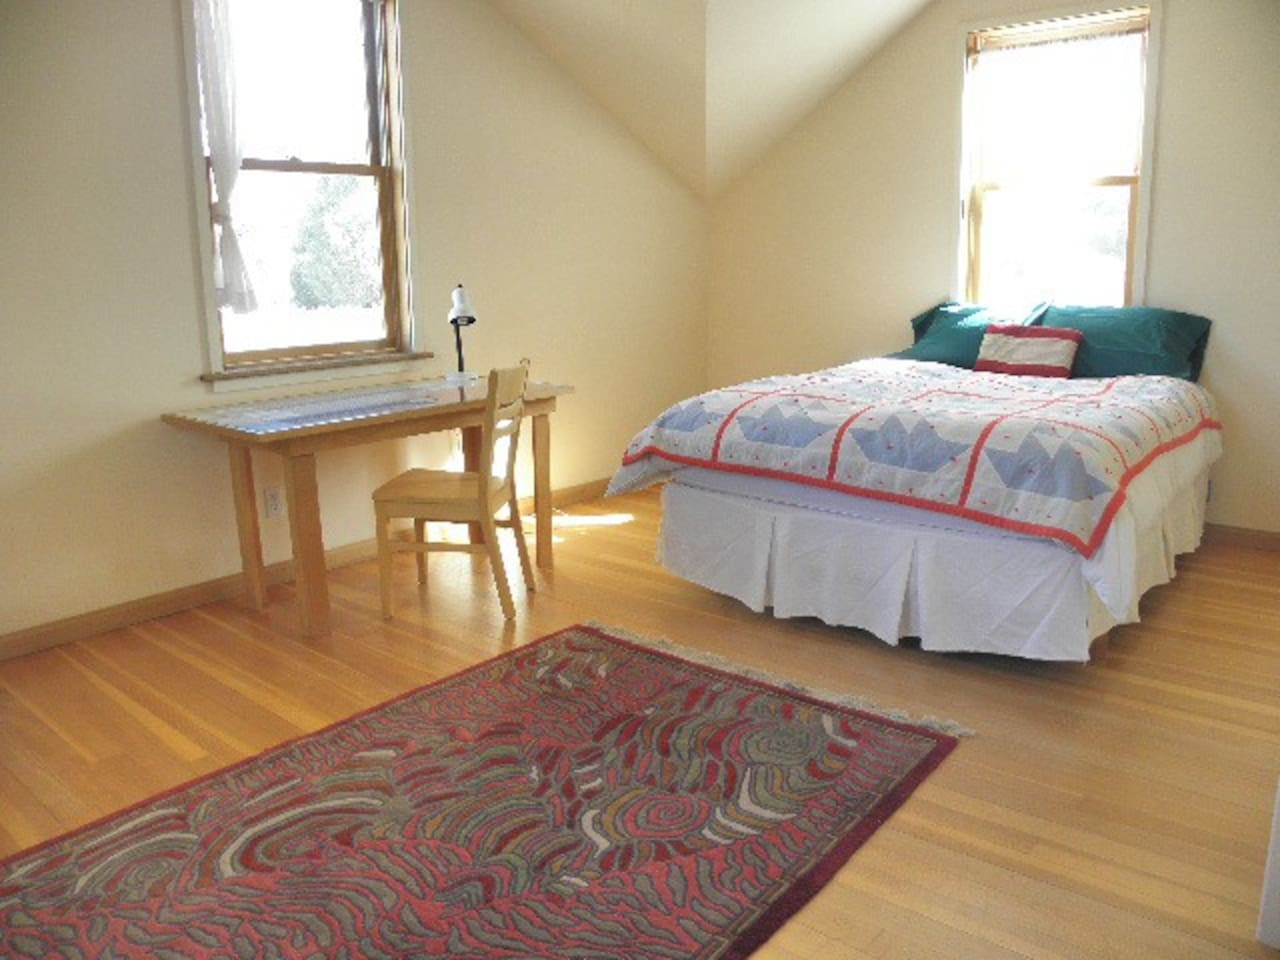 The upstairs bedroom is spacious and bright. Lovely space for yoga or relaxing.